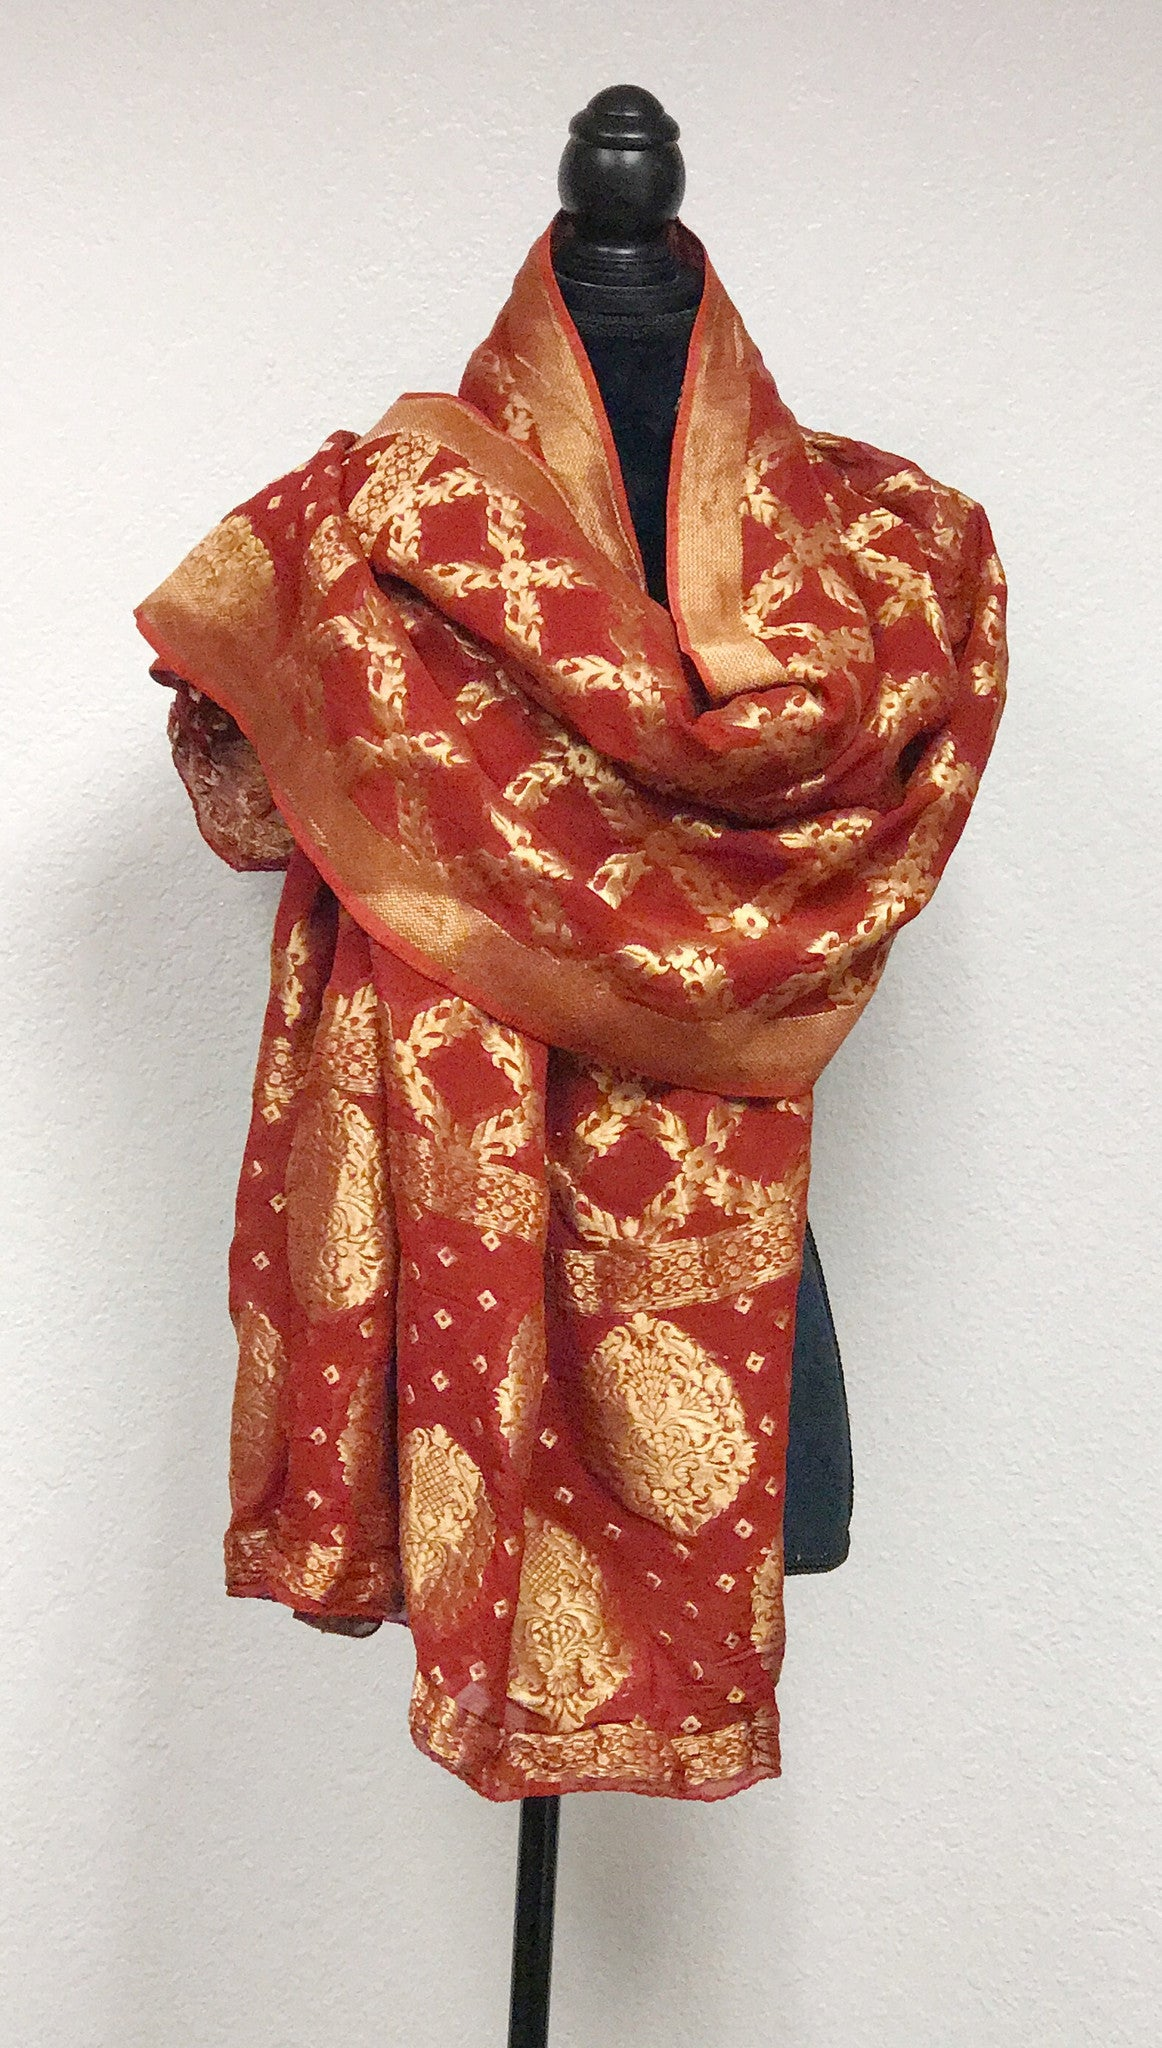 Brocade embroidered stole in dark red  # fdn0275